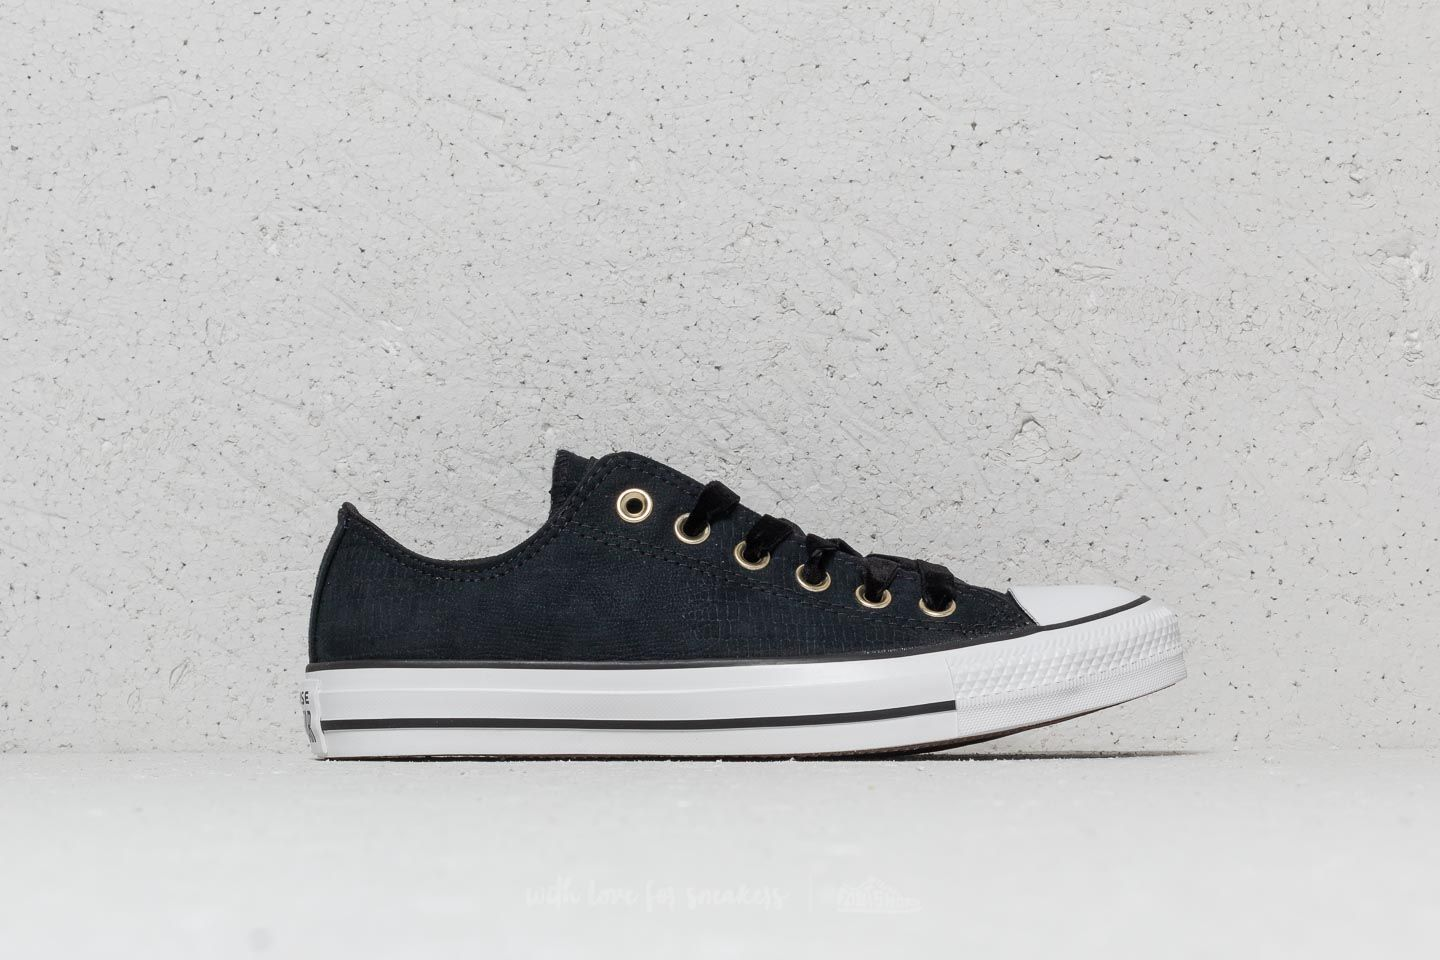 98397a81336 Converse Chuck Taylor All Star OX Black  Black  White at a great price 59